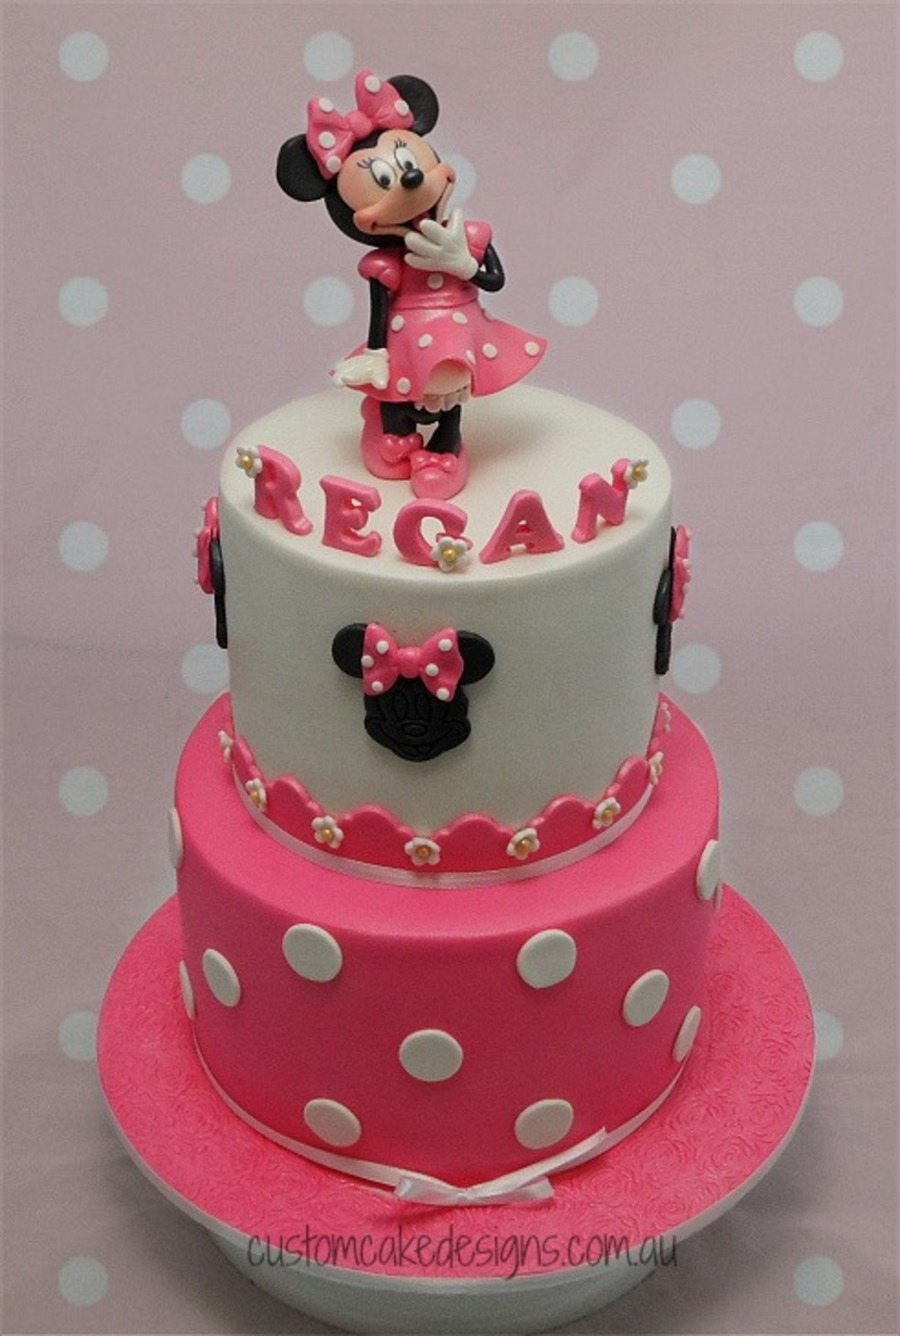 This Is The 2nd Time I Have Made This Minnie Mouse Cake Design But